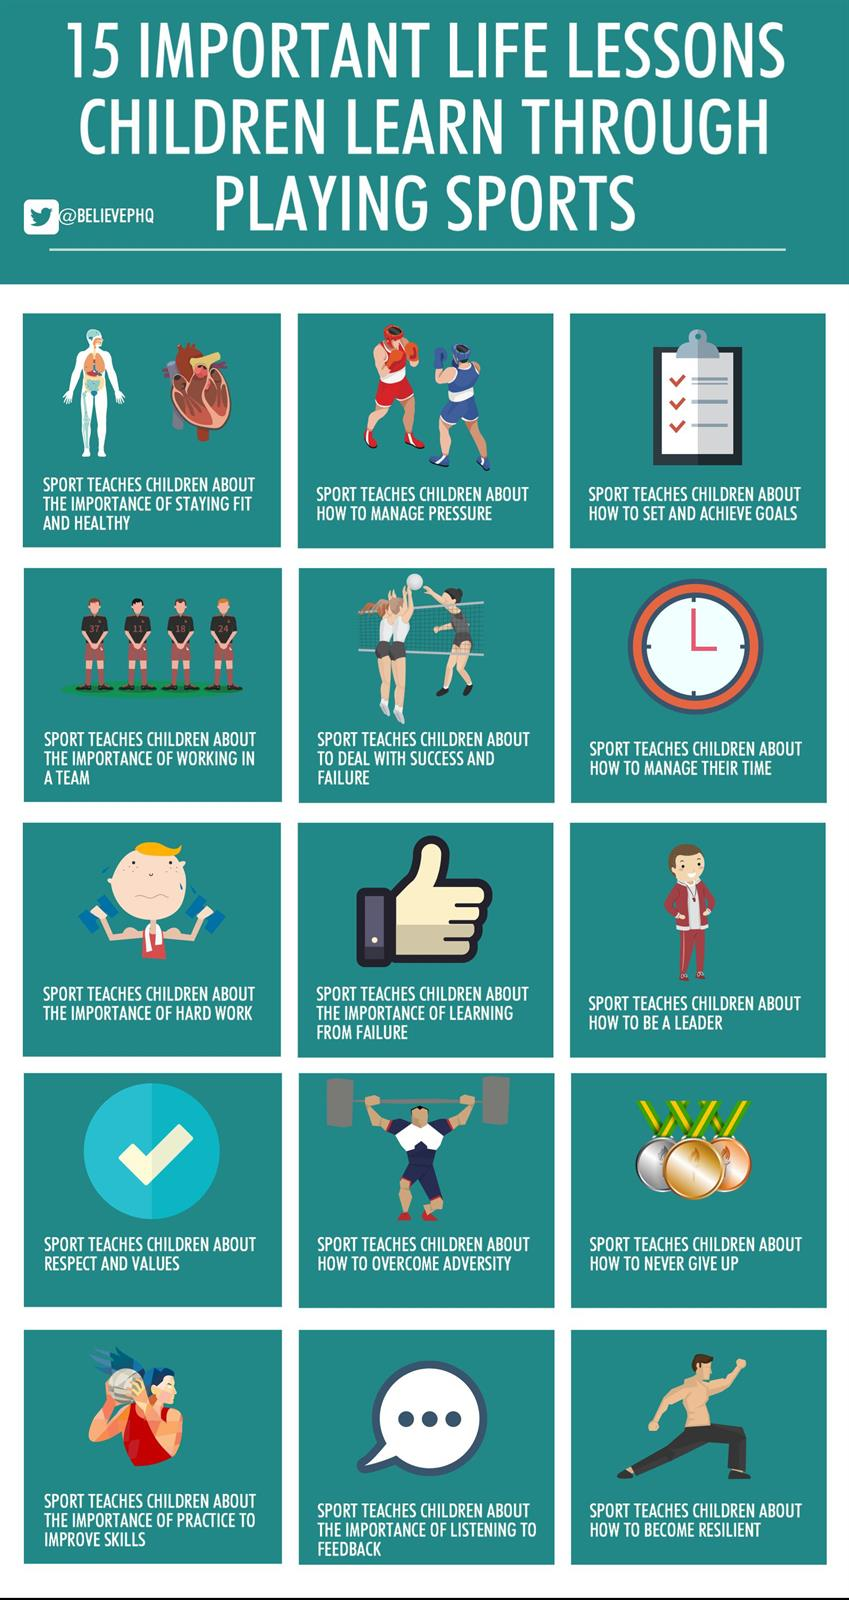 15 Life Lessons Children Learn Through Sport